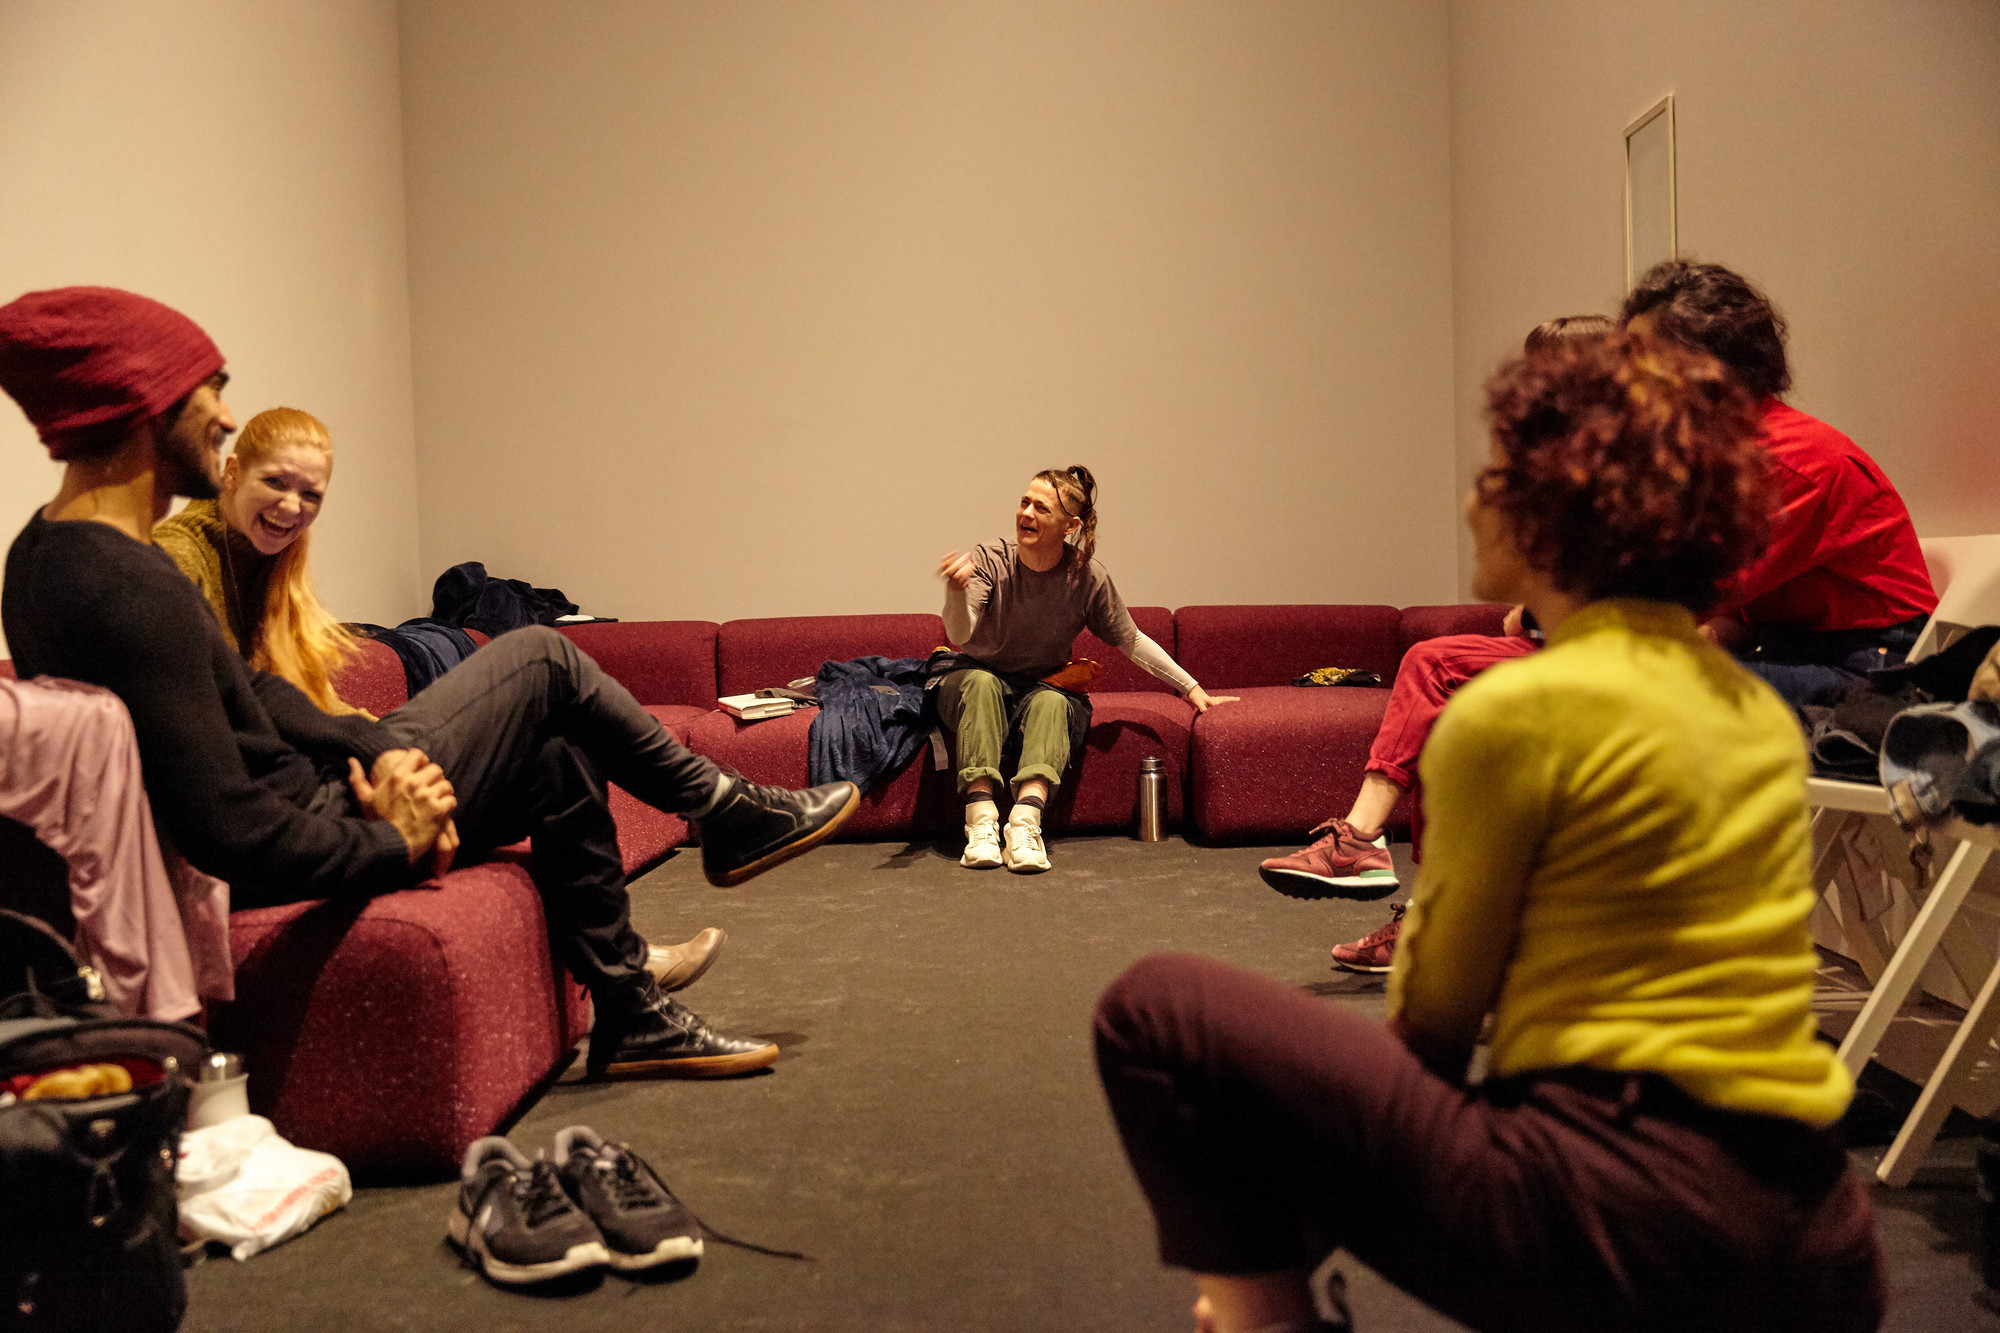 The cast assembles in the green room, a private space built into the floor plan of the exhibition where performers rest and warm up between performances. Assistant performance coordinator Sammy Roth is on hand to ensure they have everything they need.